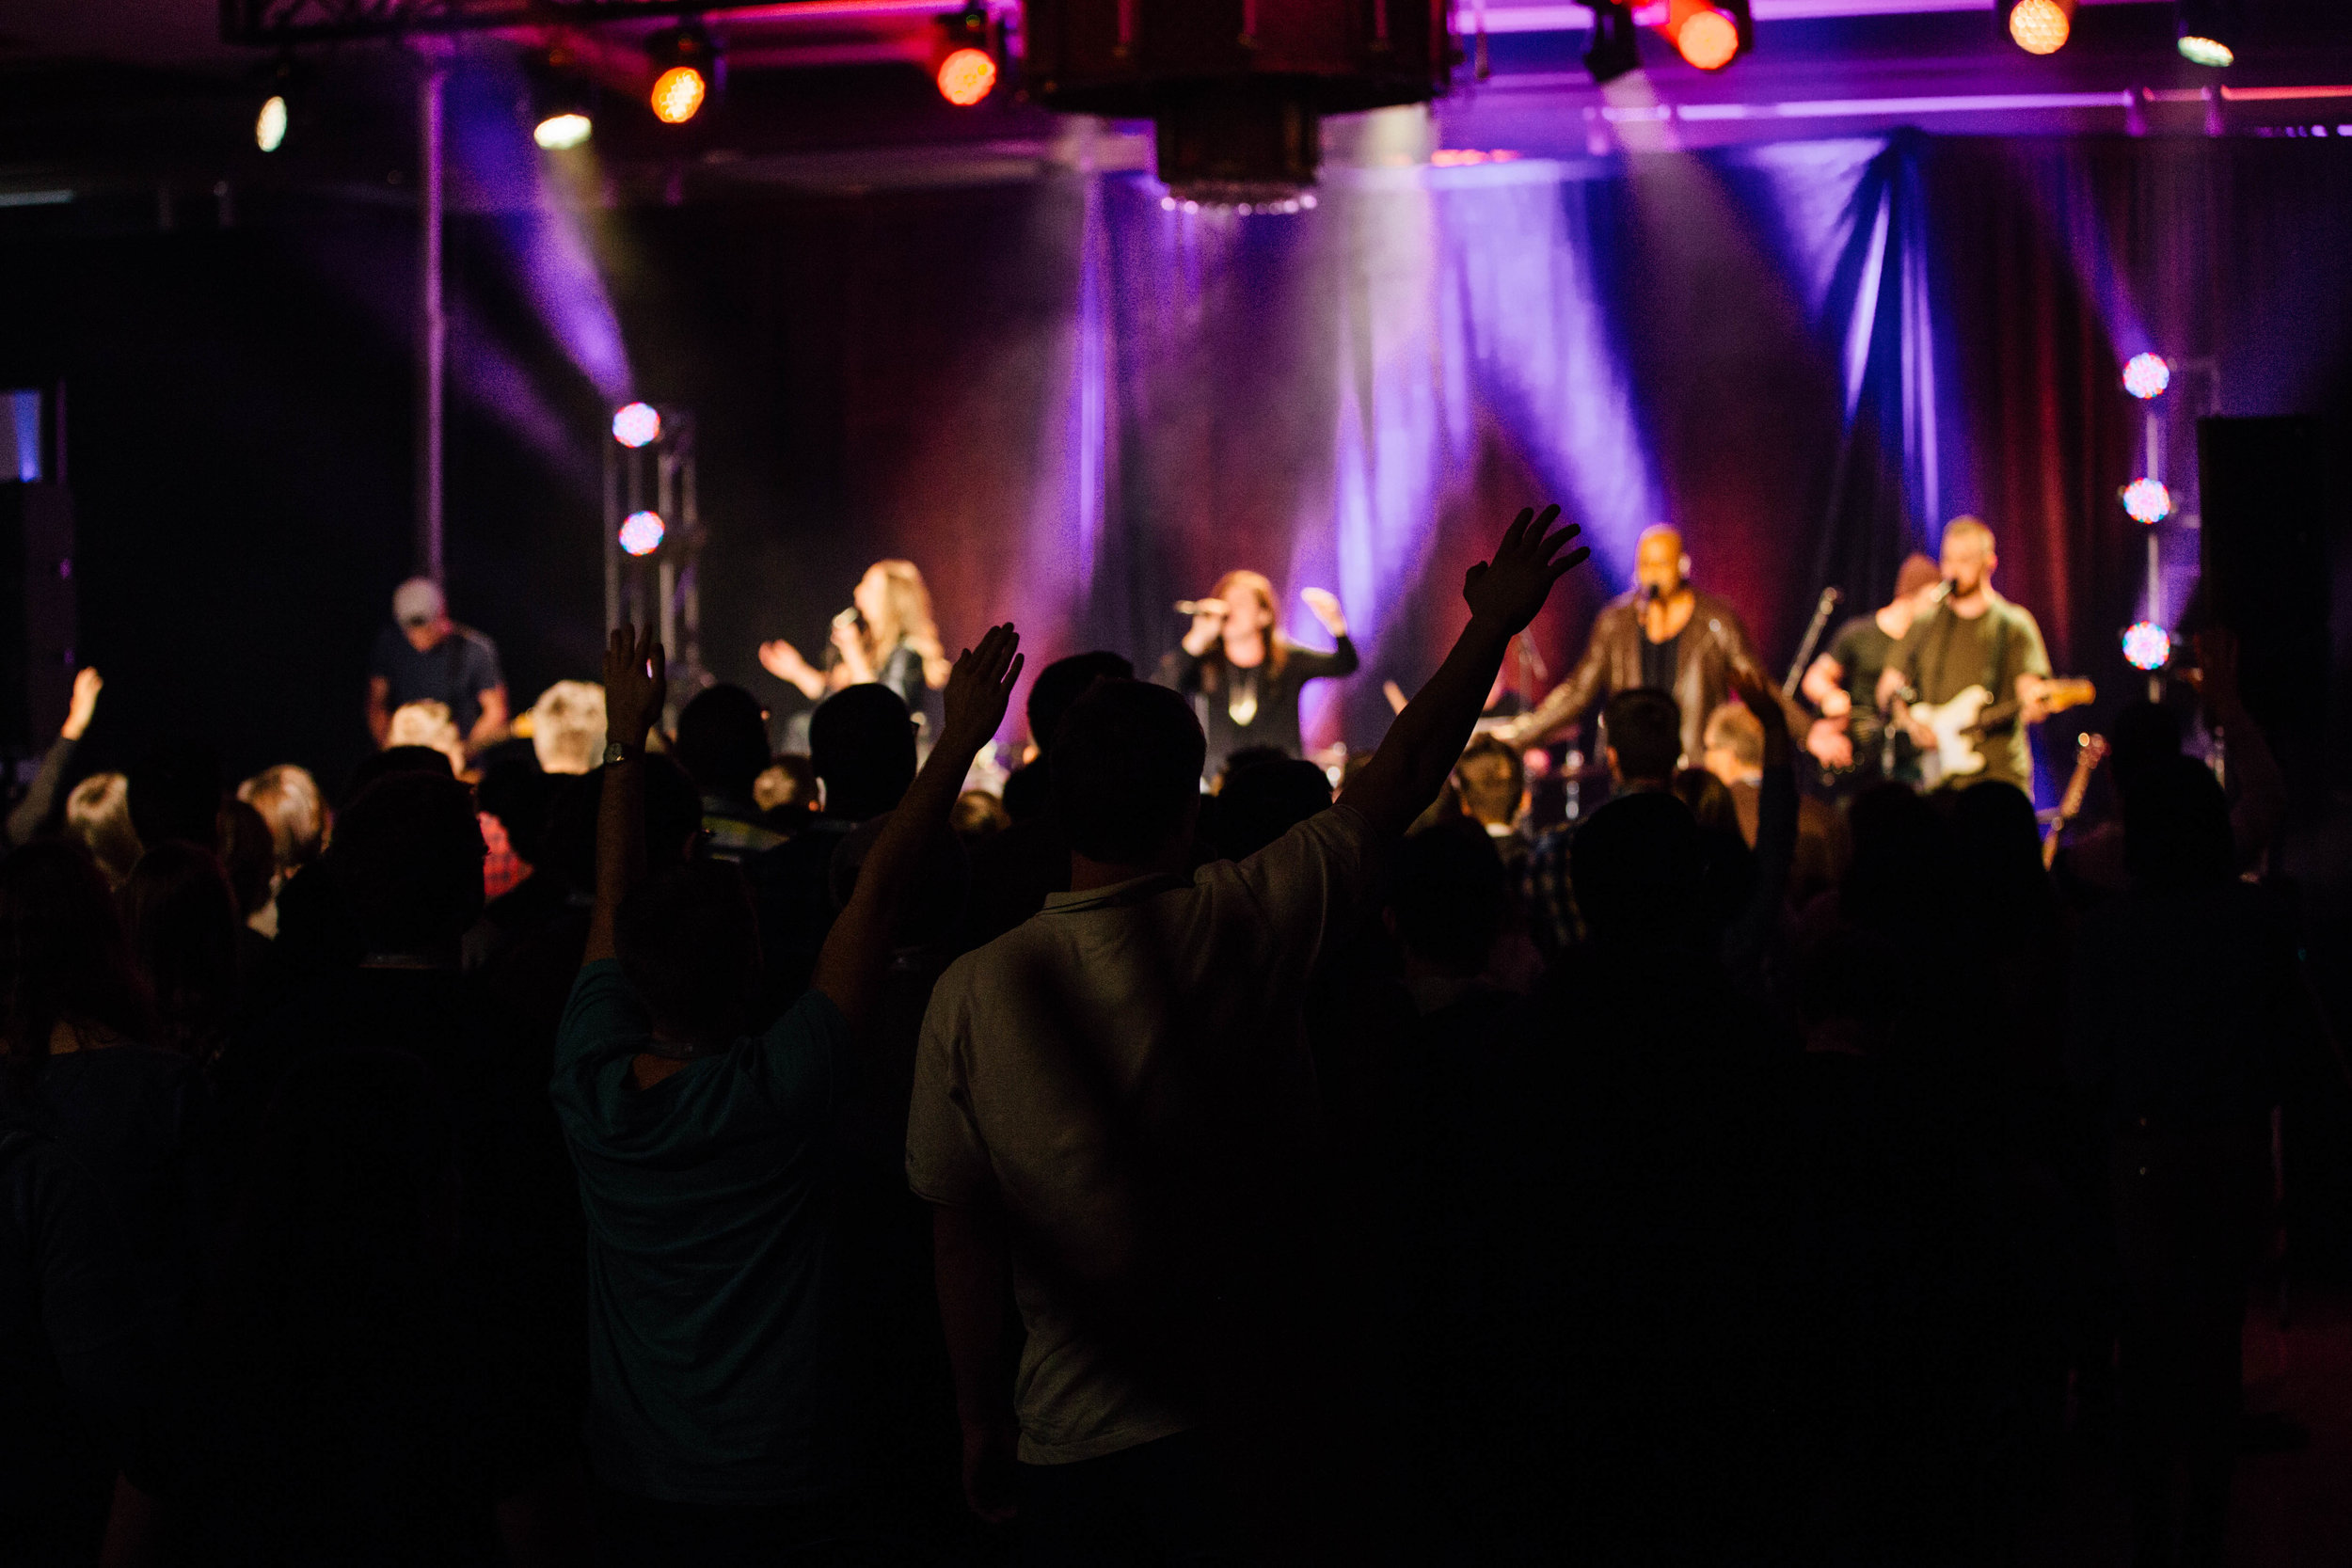 C4 Worship at Power to Change Student Conference